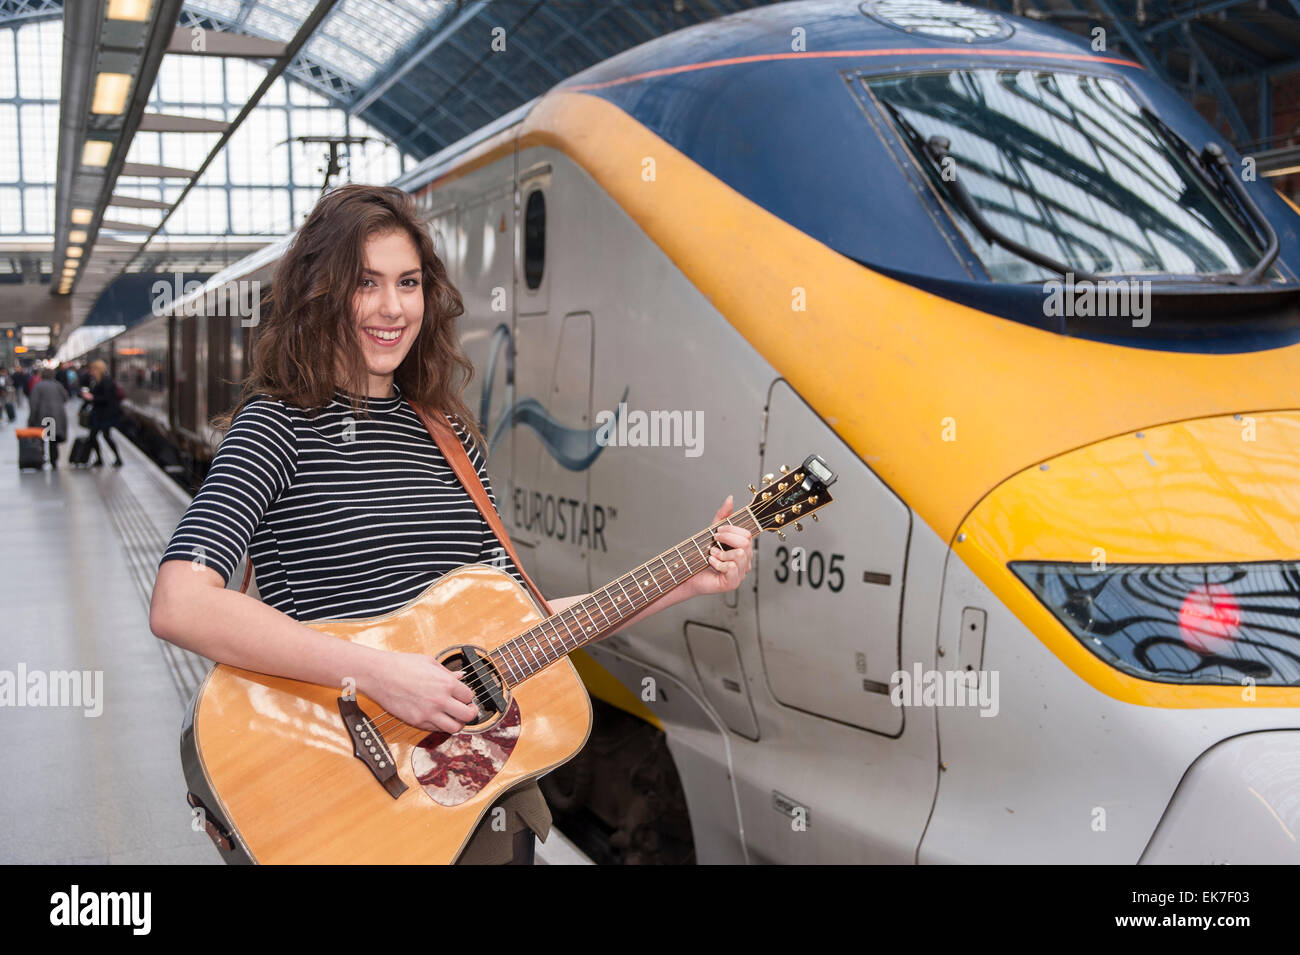 St Pancras International Station, London, UK.  8 April 2015.  Natalie Shay, a 16 year old musician from Enfield, - Stock Image